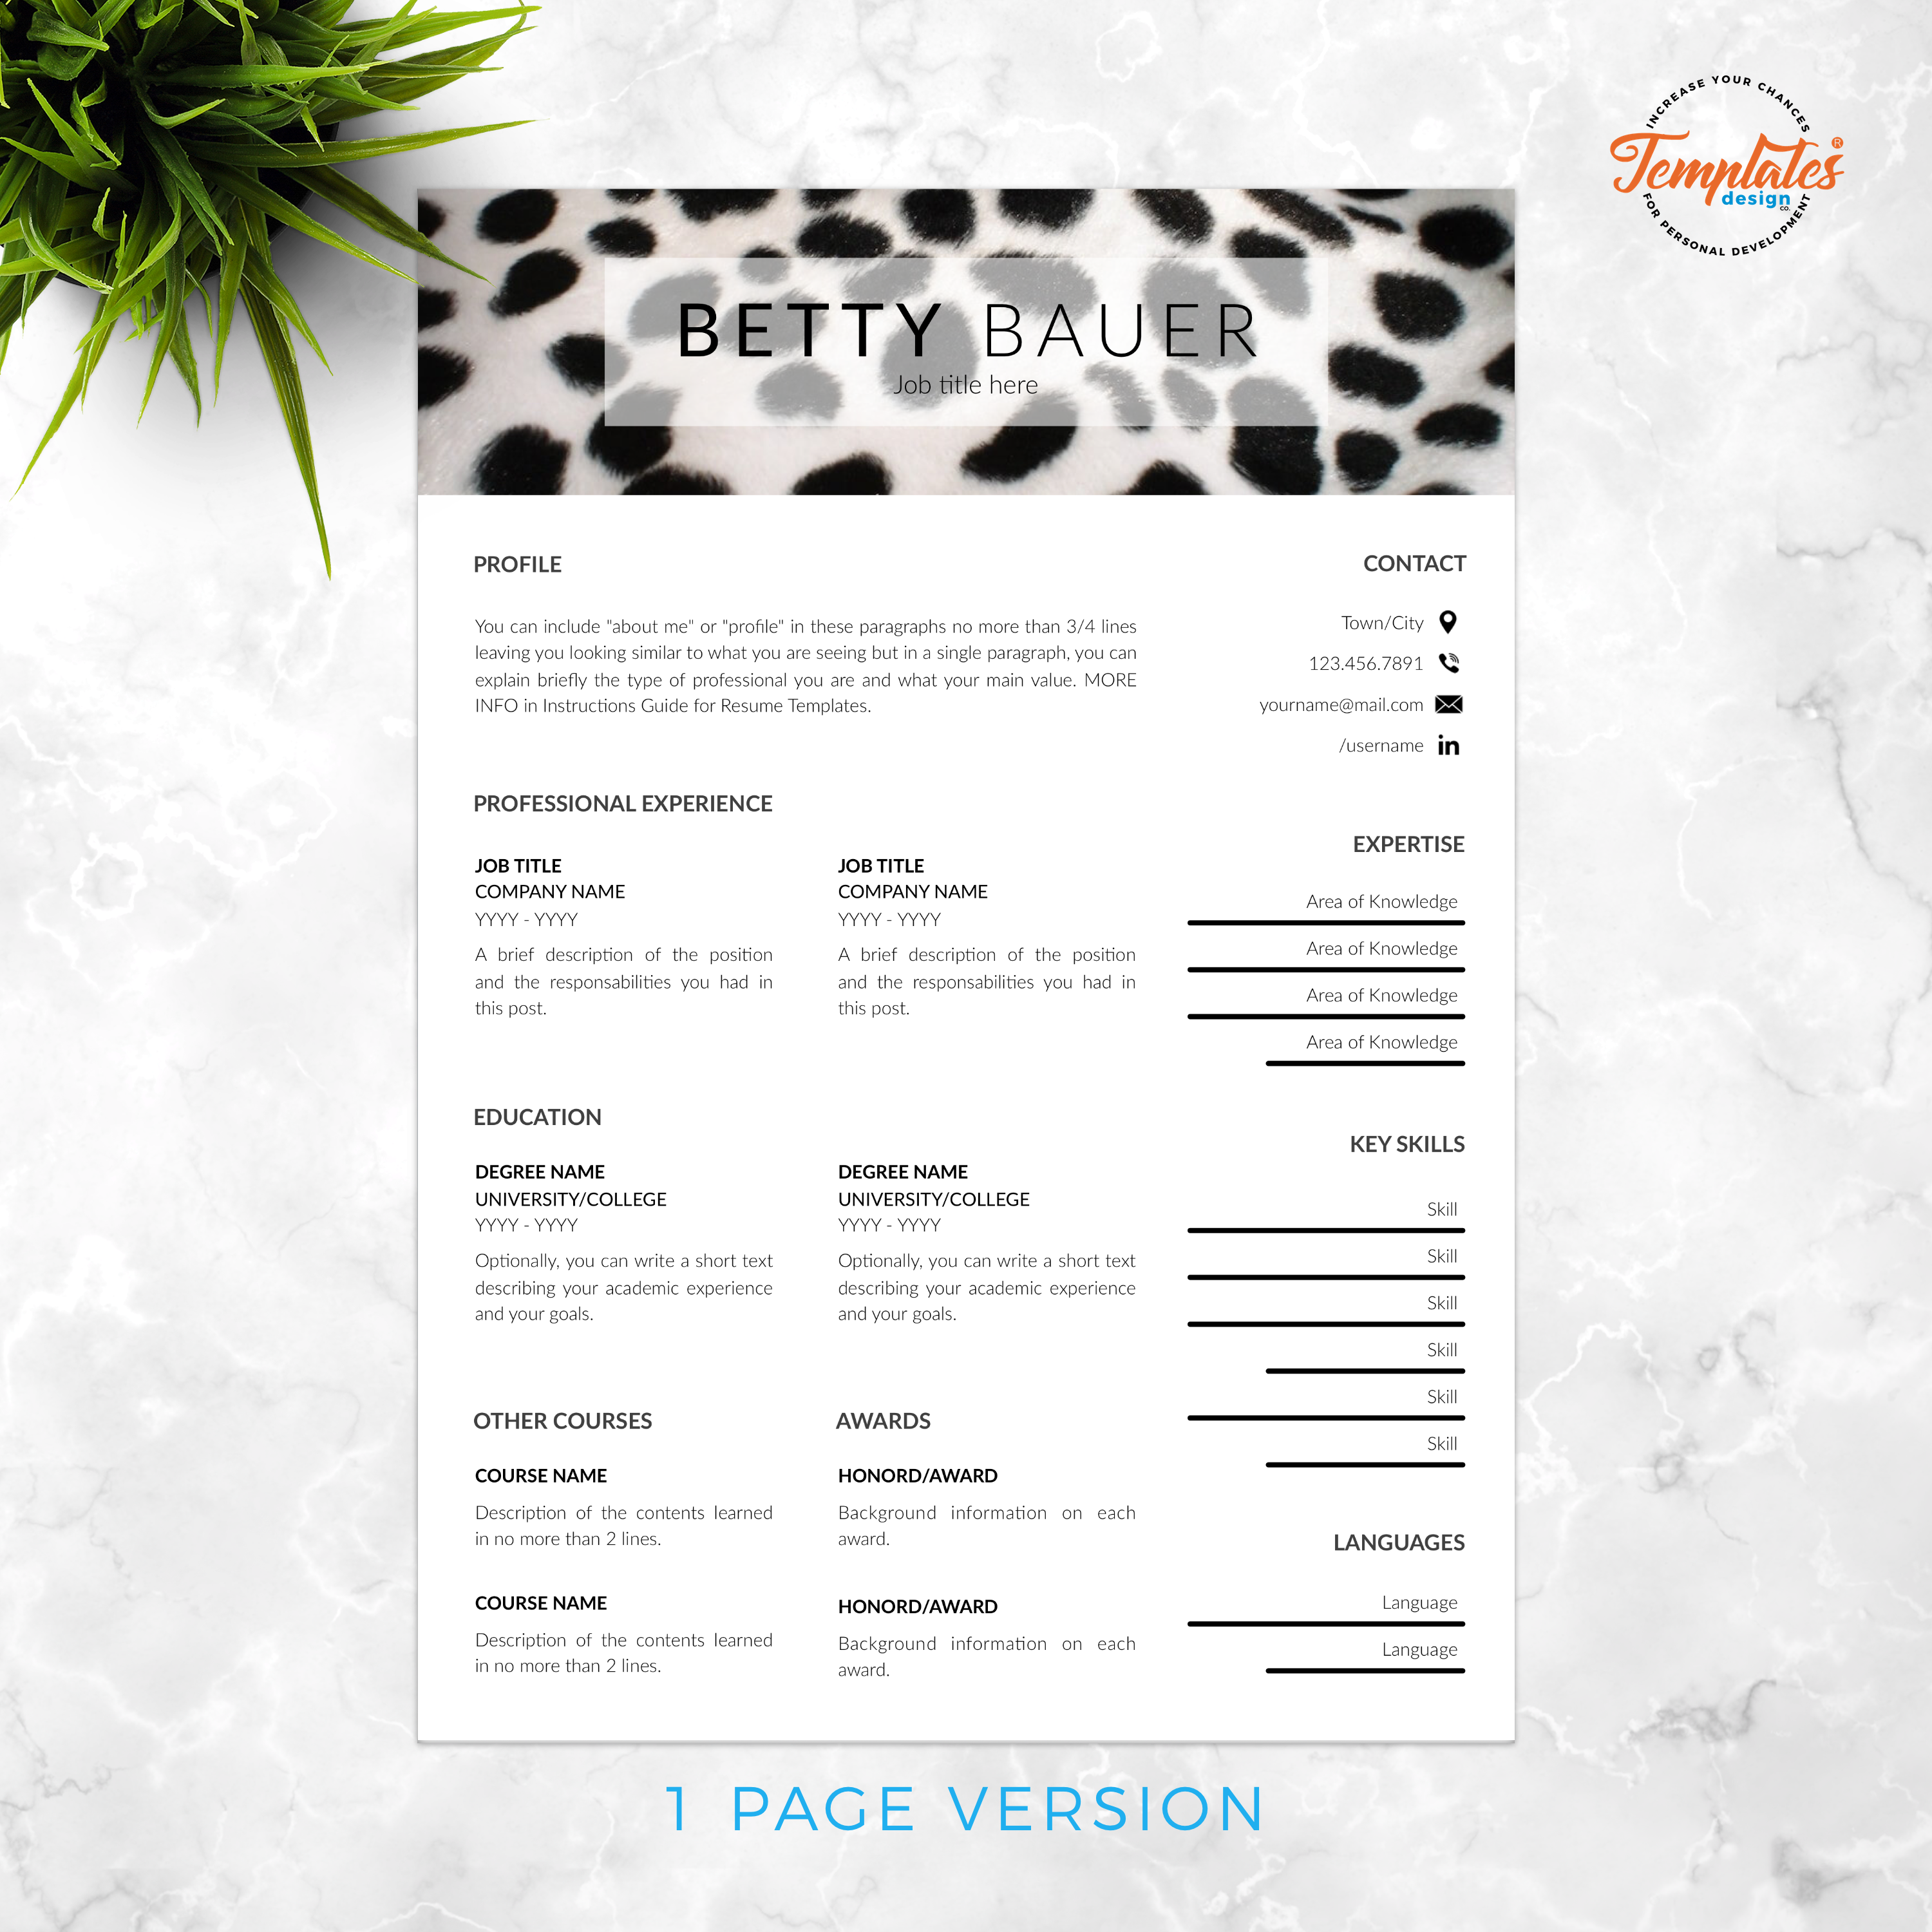 Resume Template For Ms Word Docx Pages Pages With Us Letter Size Files And A4 Size Files 1 2 And 3 Page Cv Template Resume Templates Resume Template